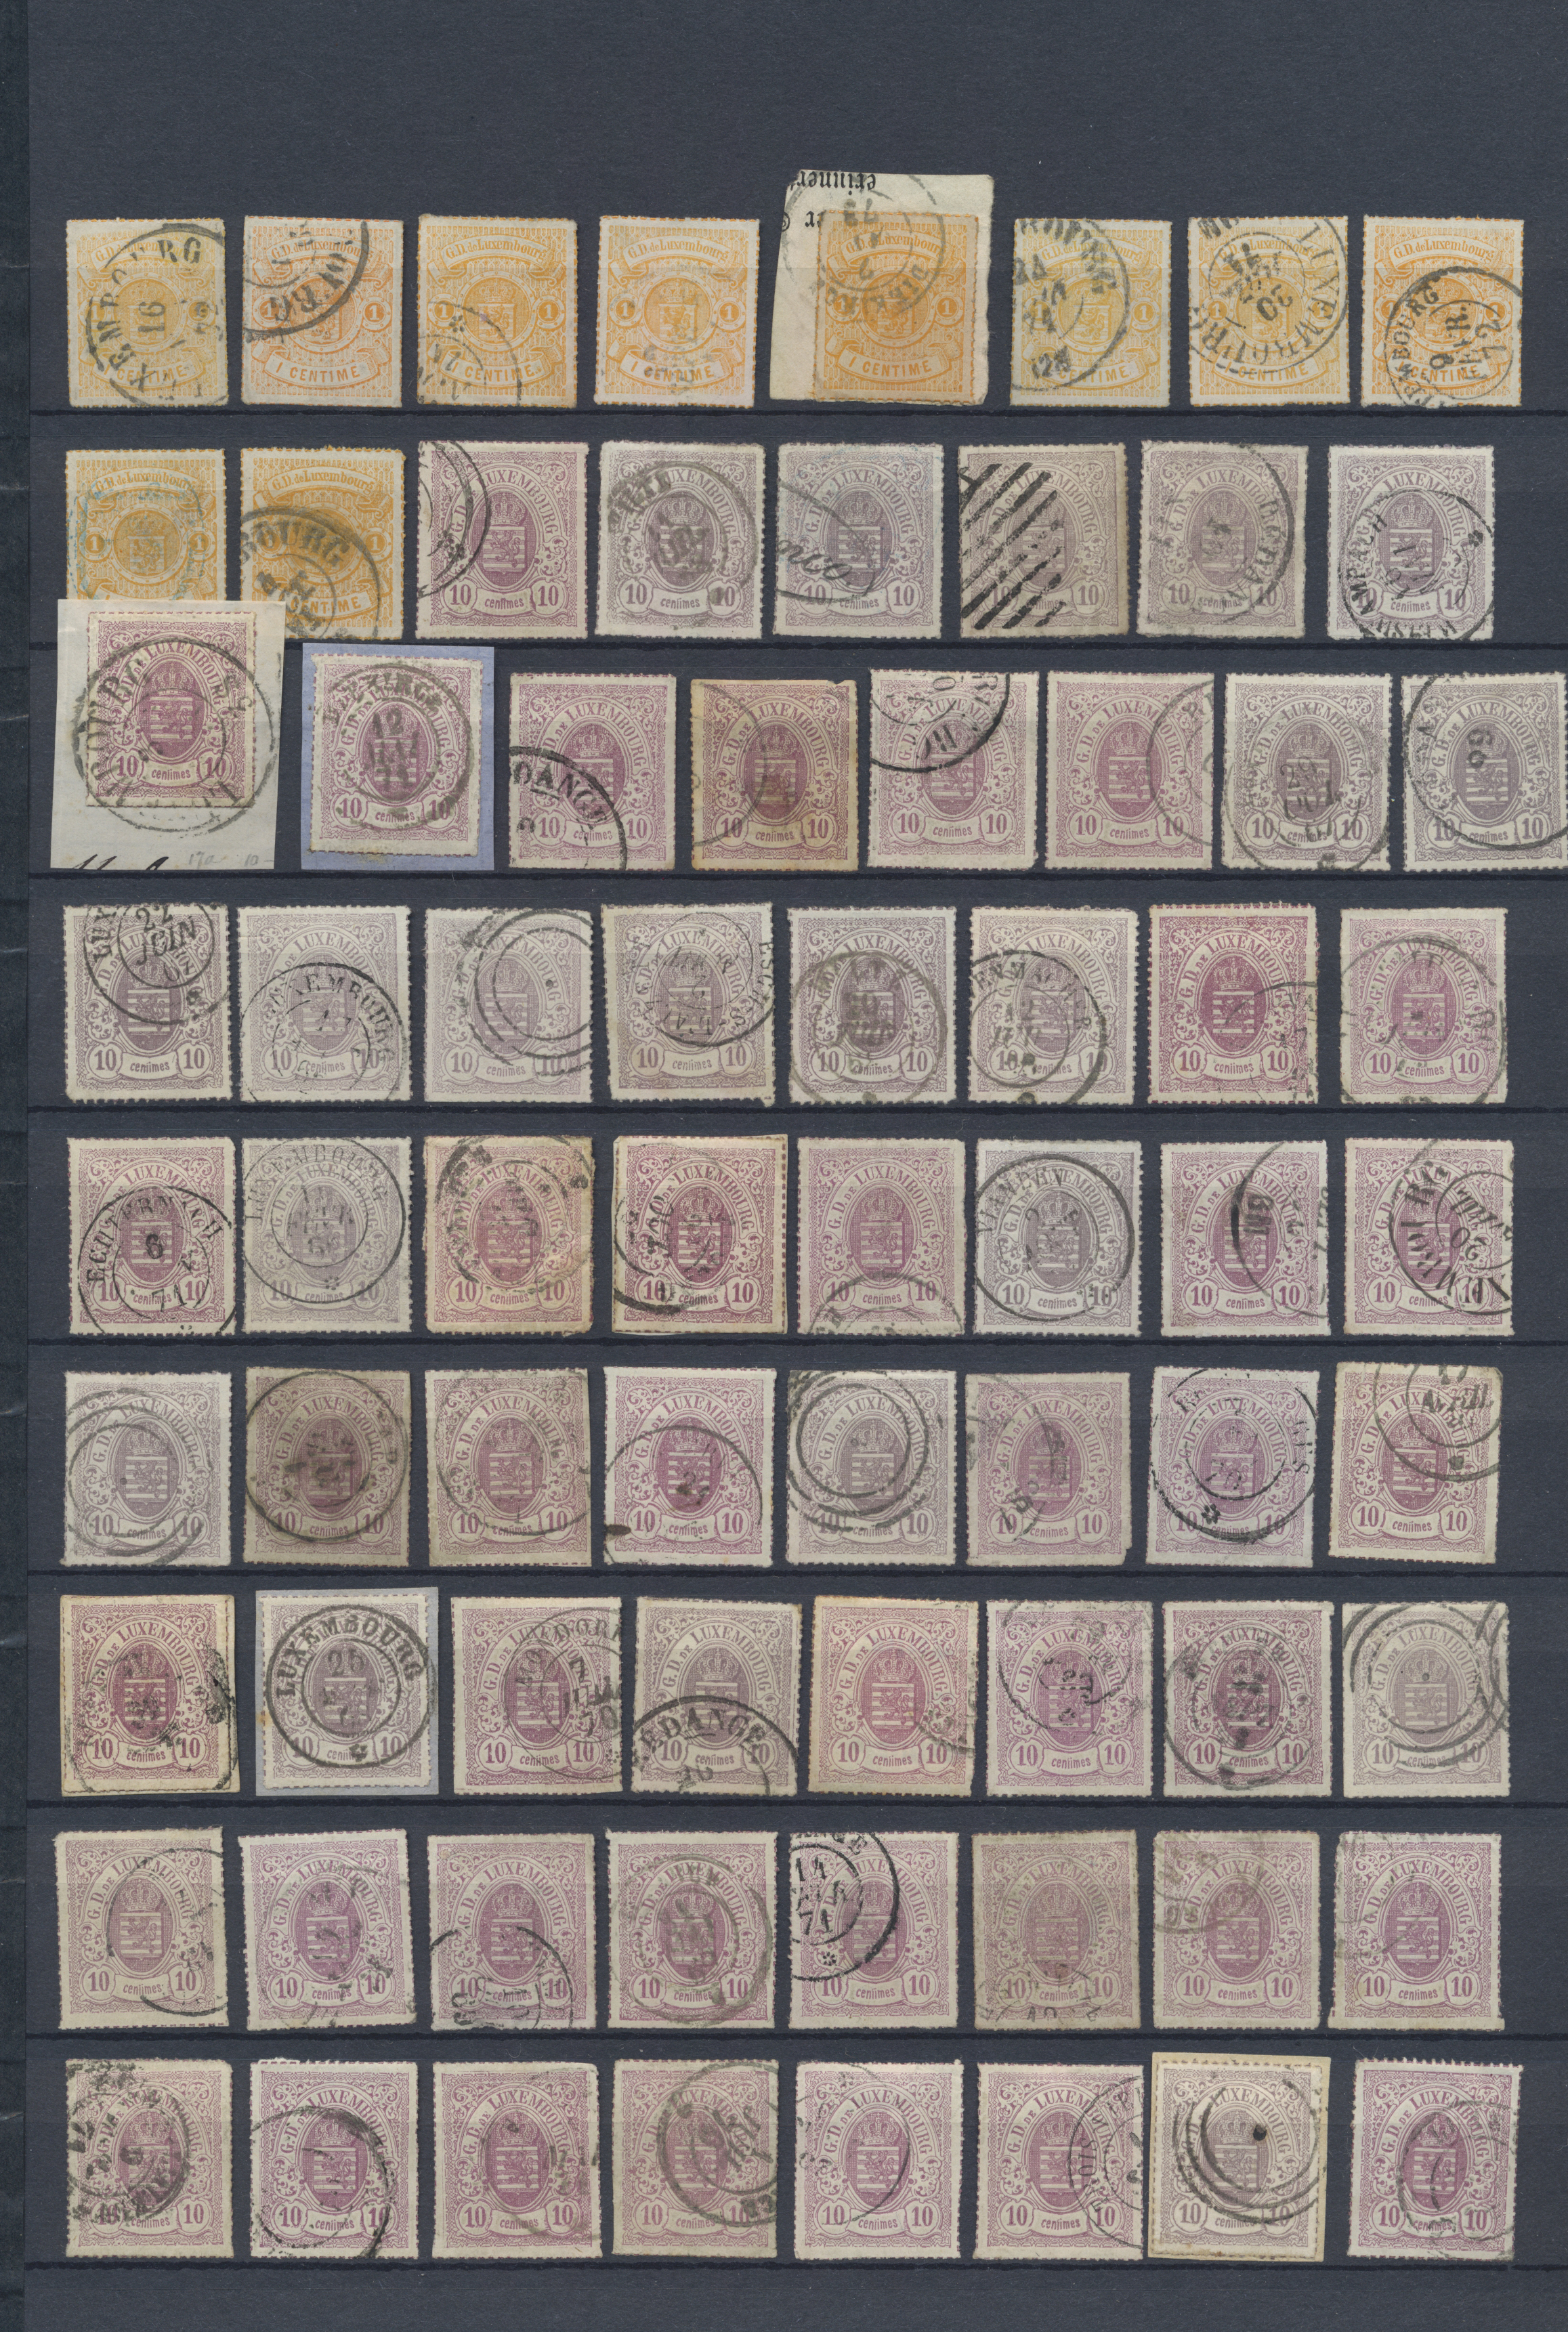 Lot 17692 - luxemburg  -  Auktionshaus Christoph Gärtner GmbH & Co. KG Sale #48 collections Overseas  Airmail / Ship mail & Thematics